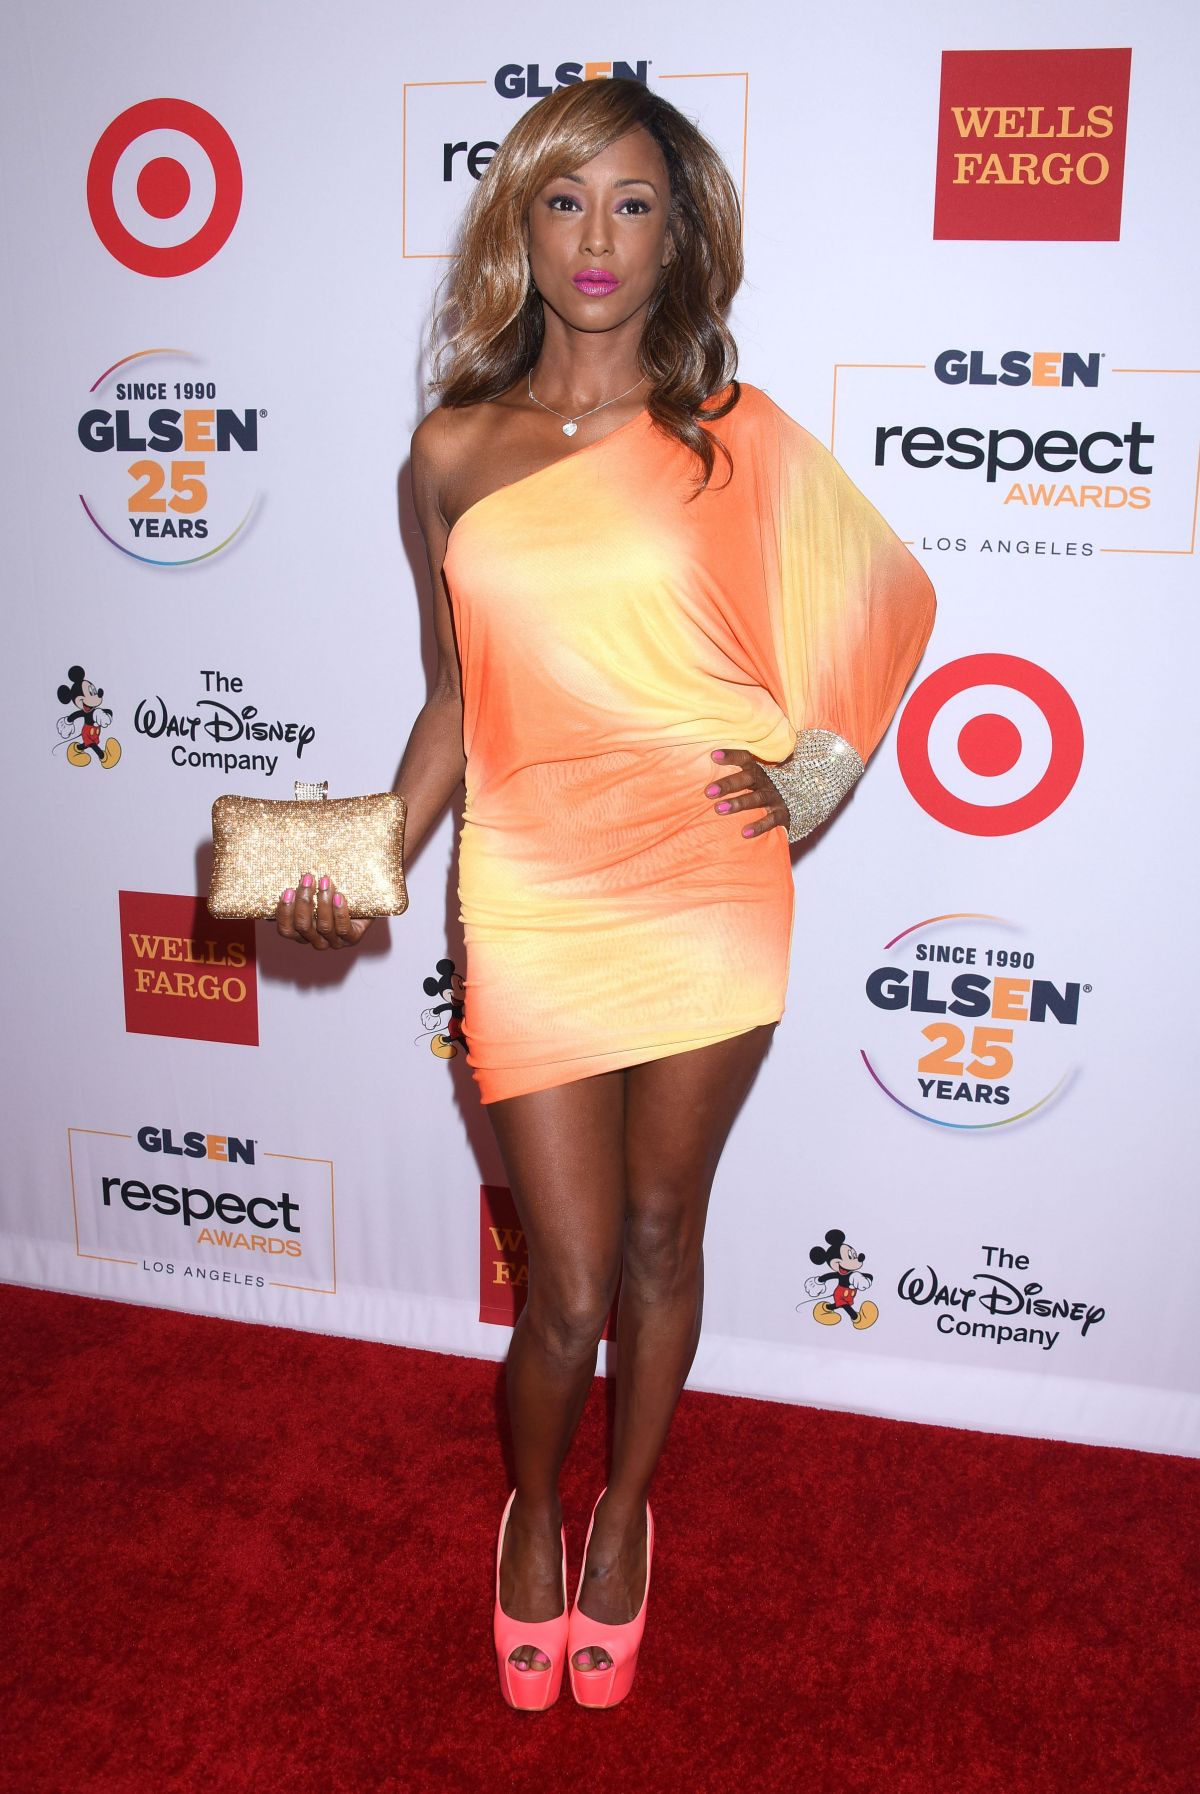 TRINA MCGEE at 2015 glsen Respect Awards in Beverly Hills 10/23/2015